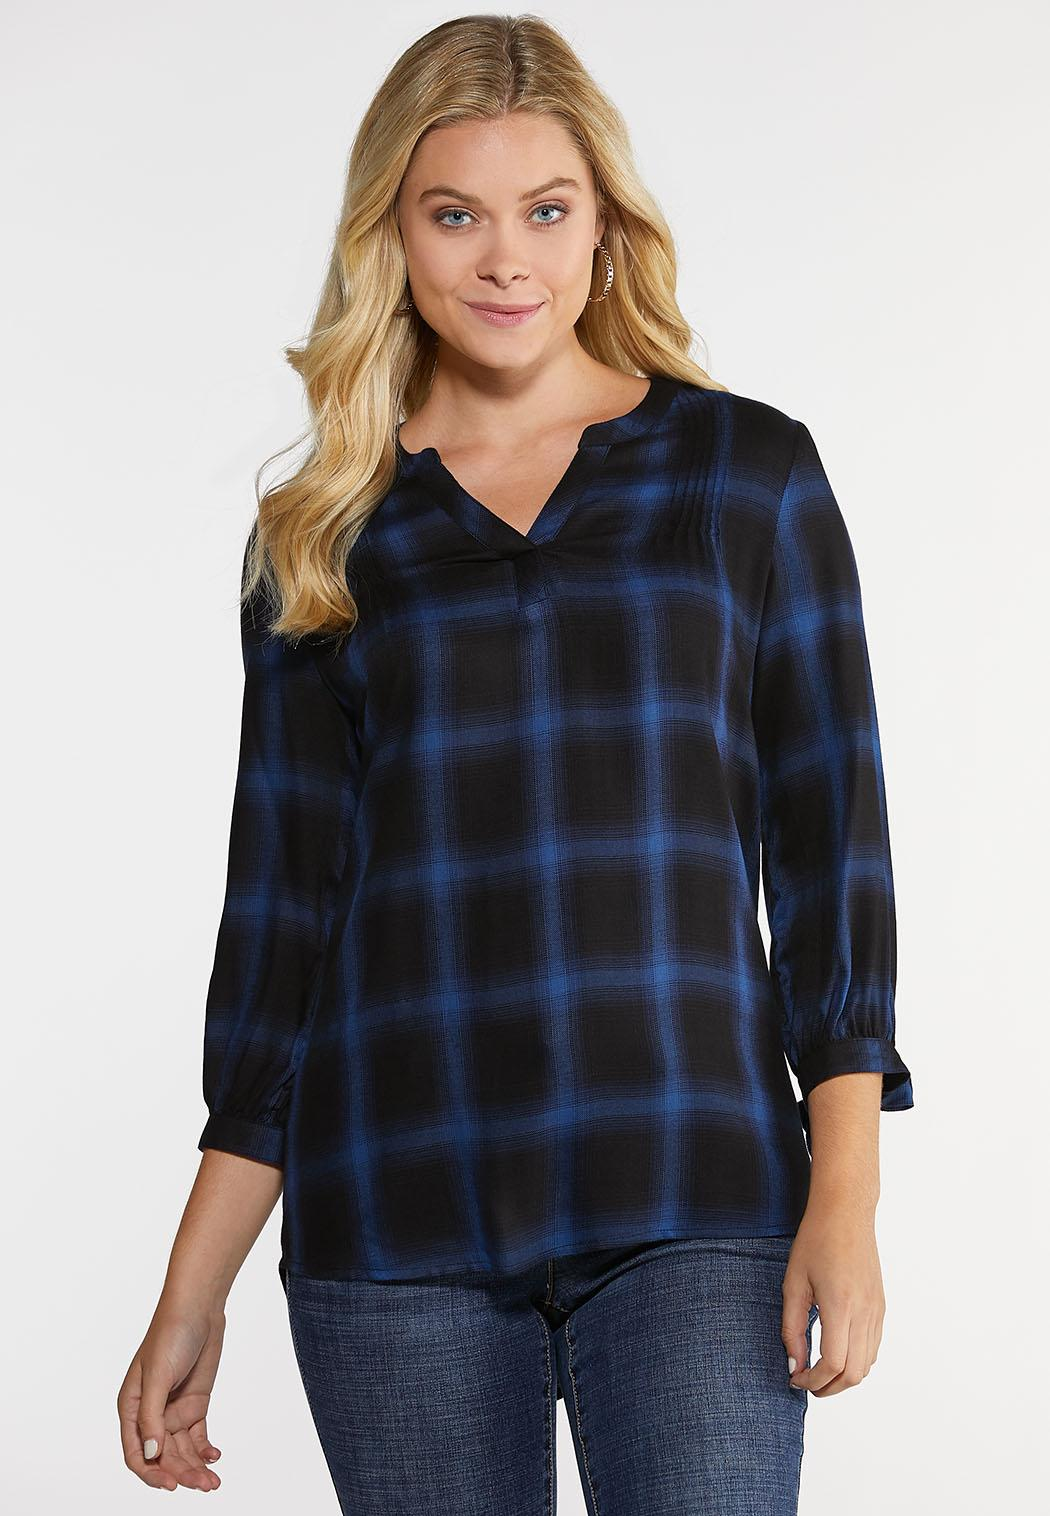 Black And Blue Plaid Top